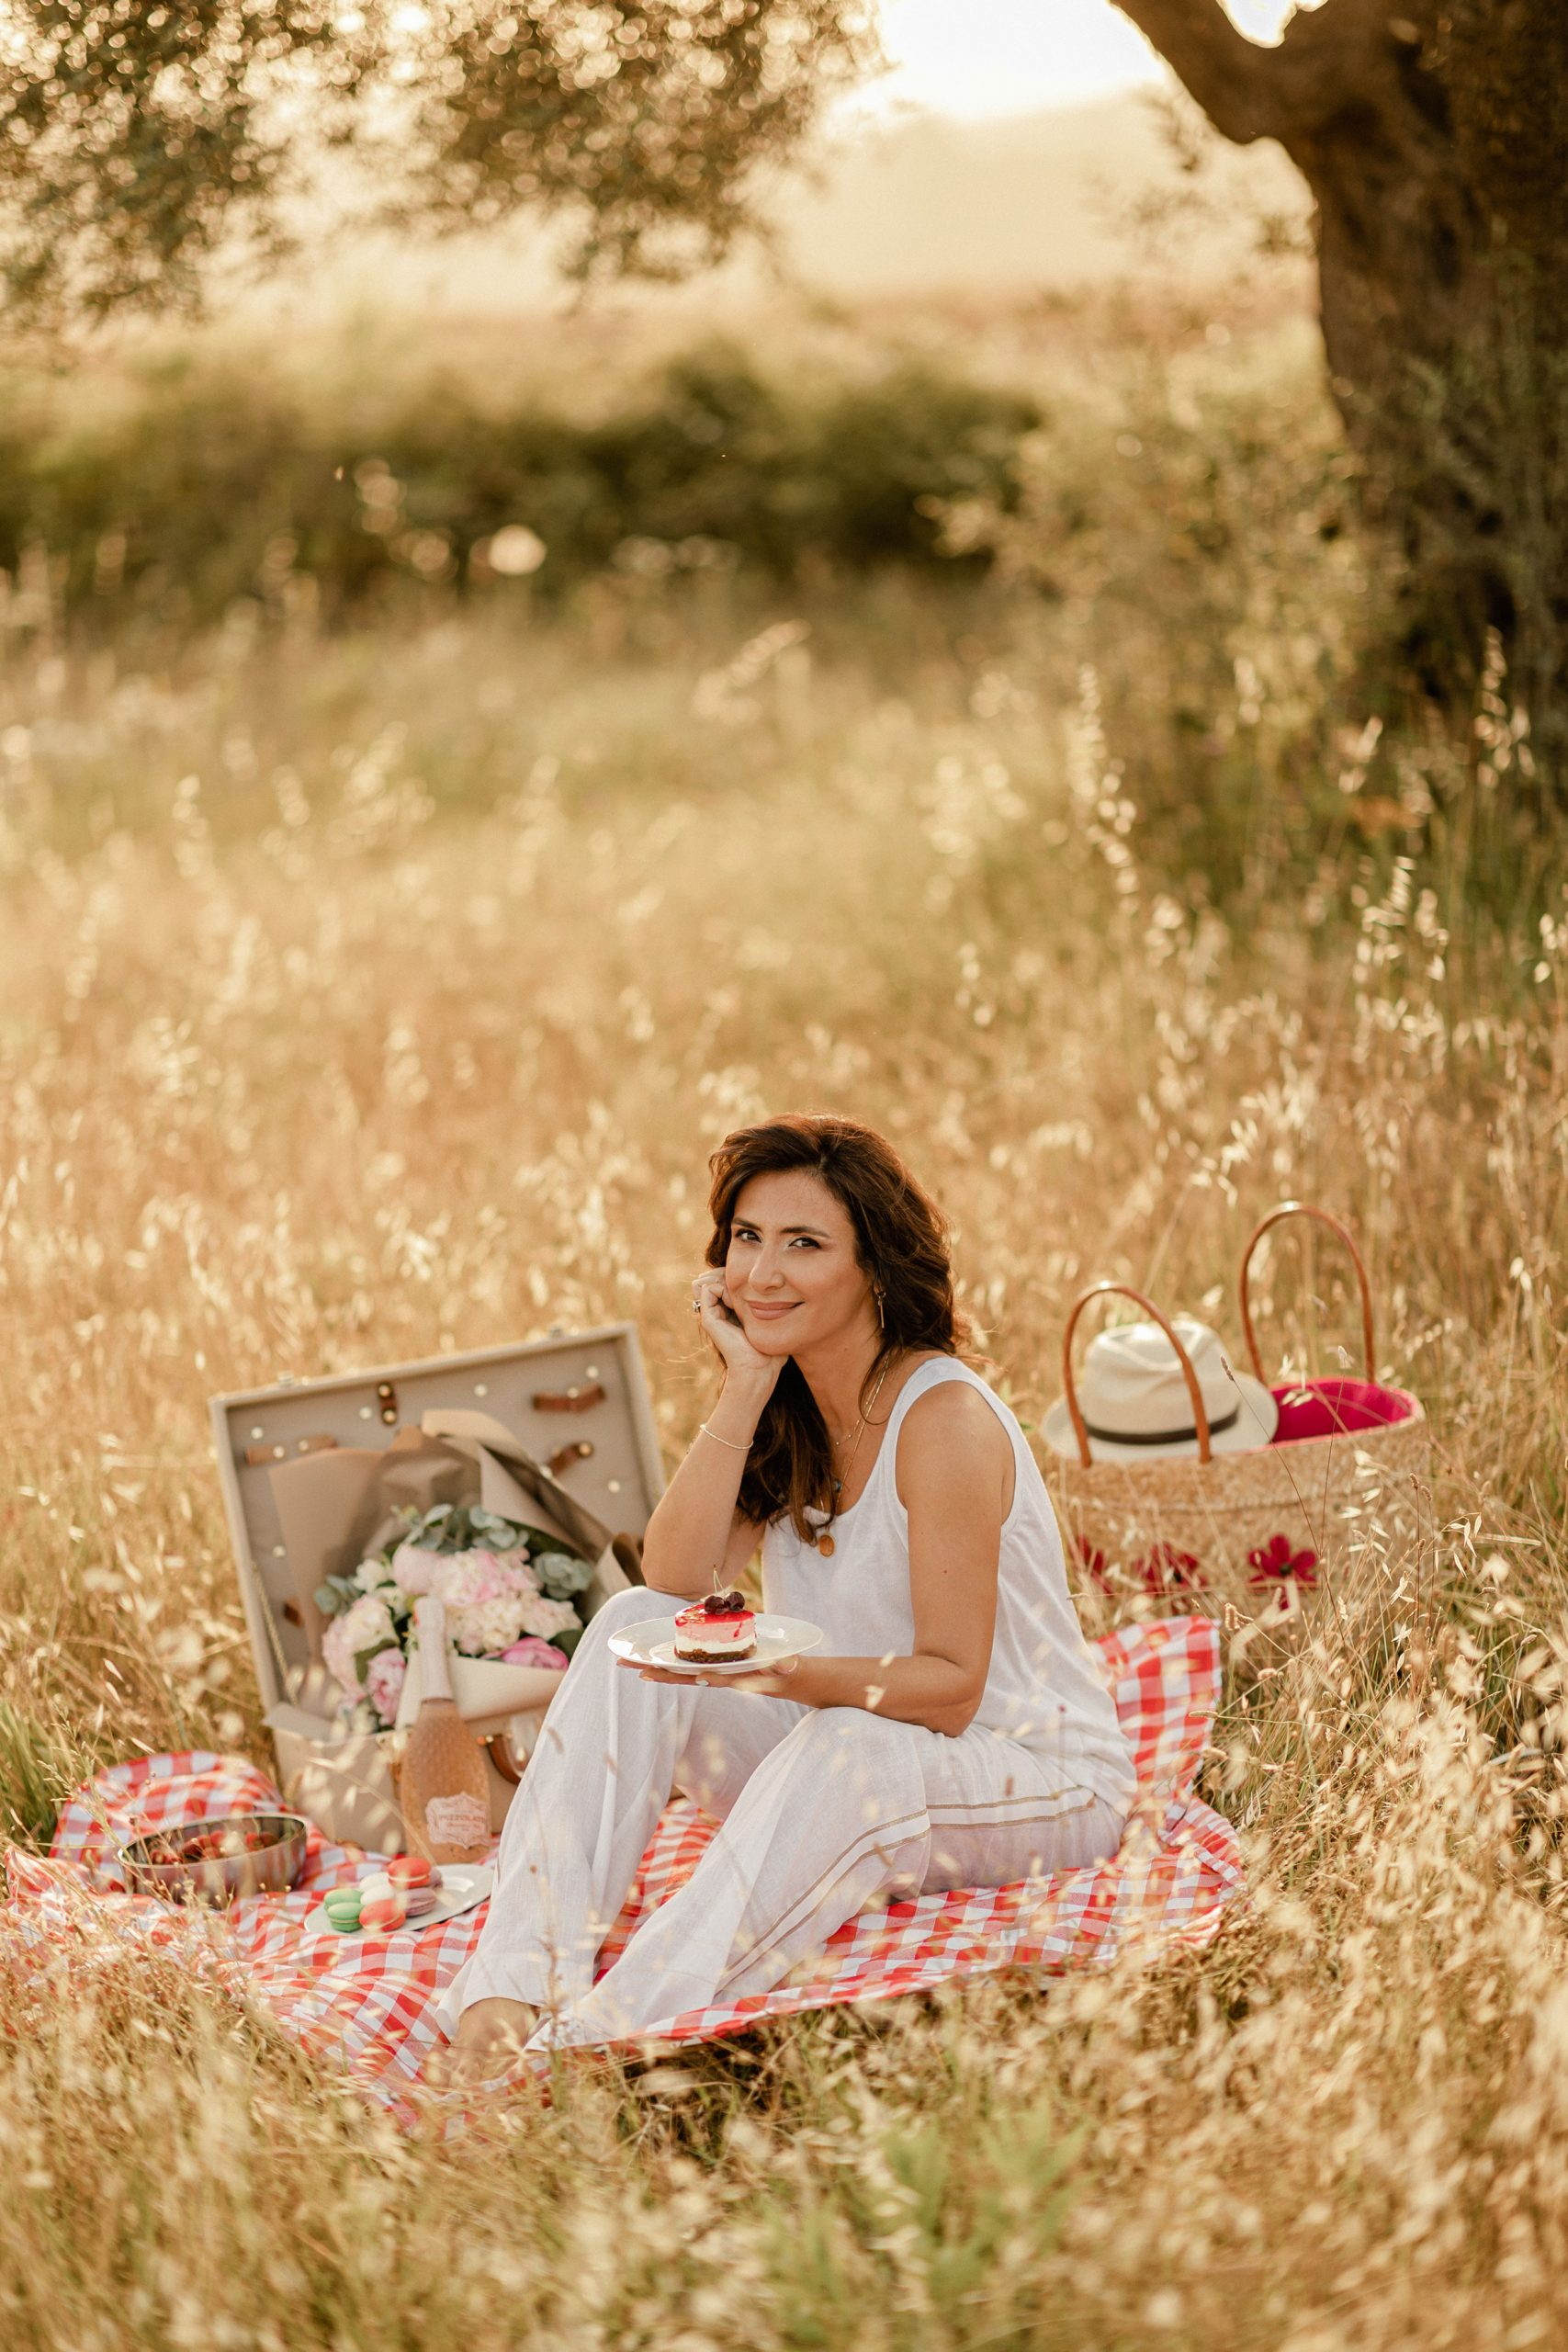 Iva Tico during a picnic photoshoot